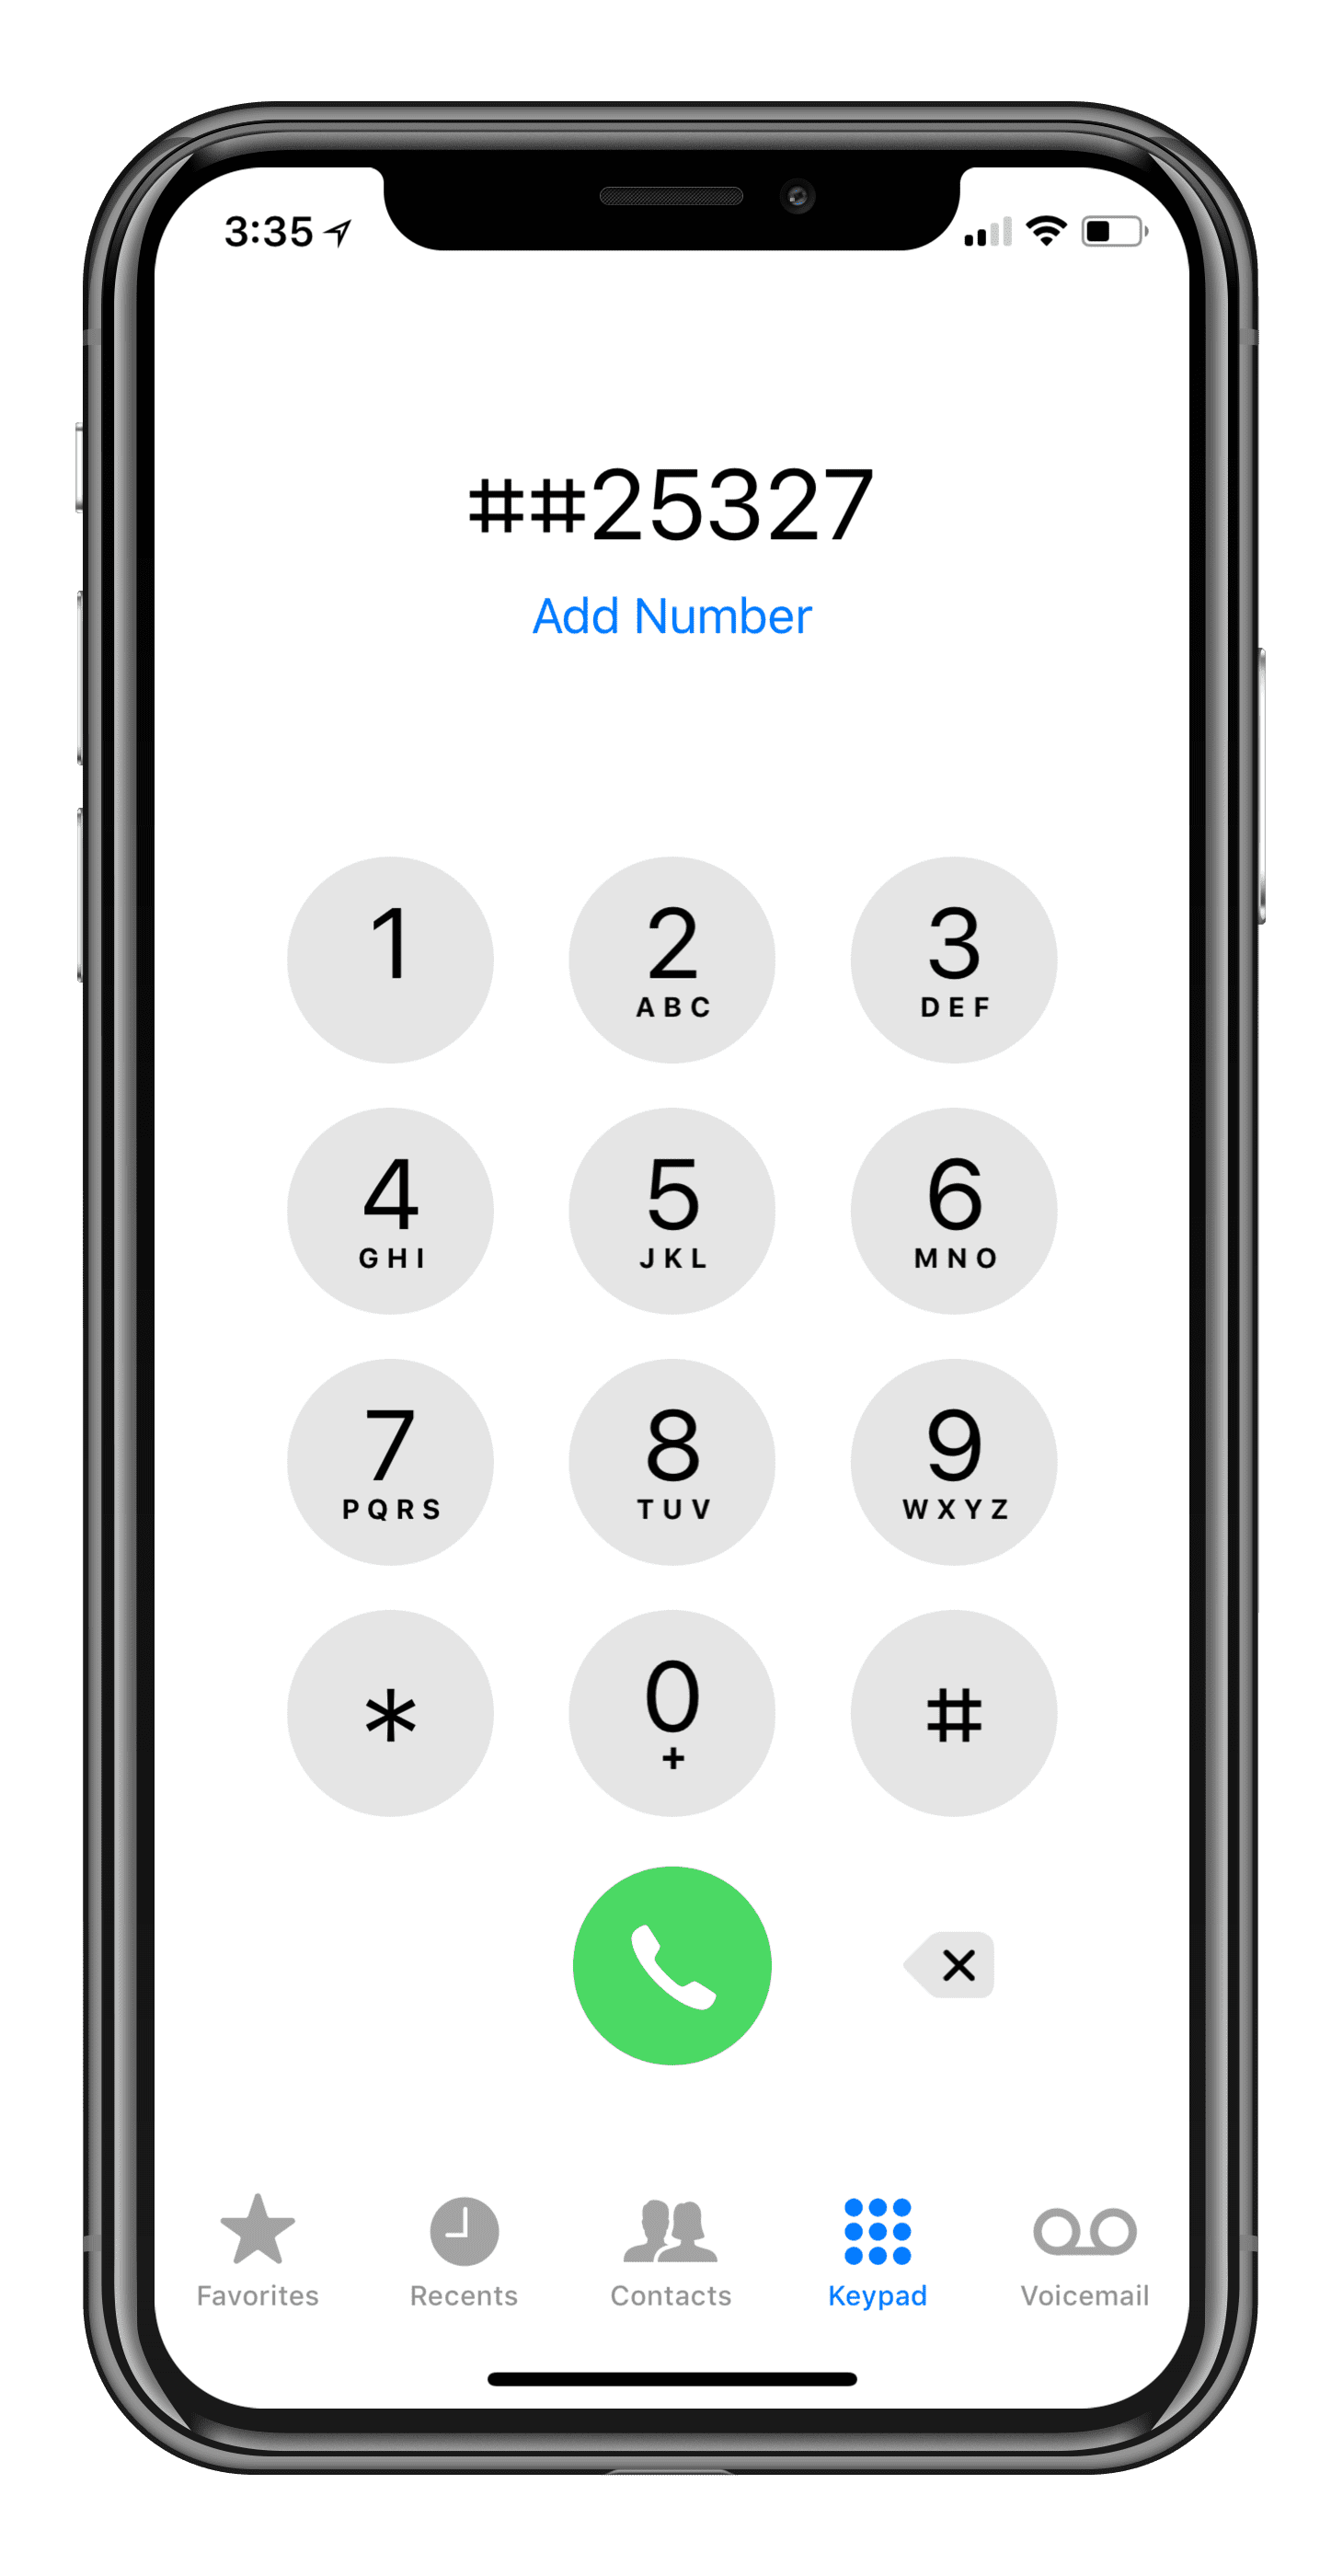 Wi-Fi Calling Not Working After iOS Update? How-To Fix - AppleToolBox